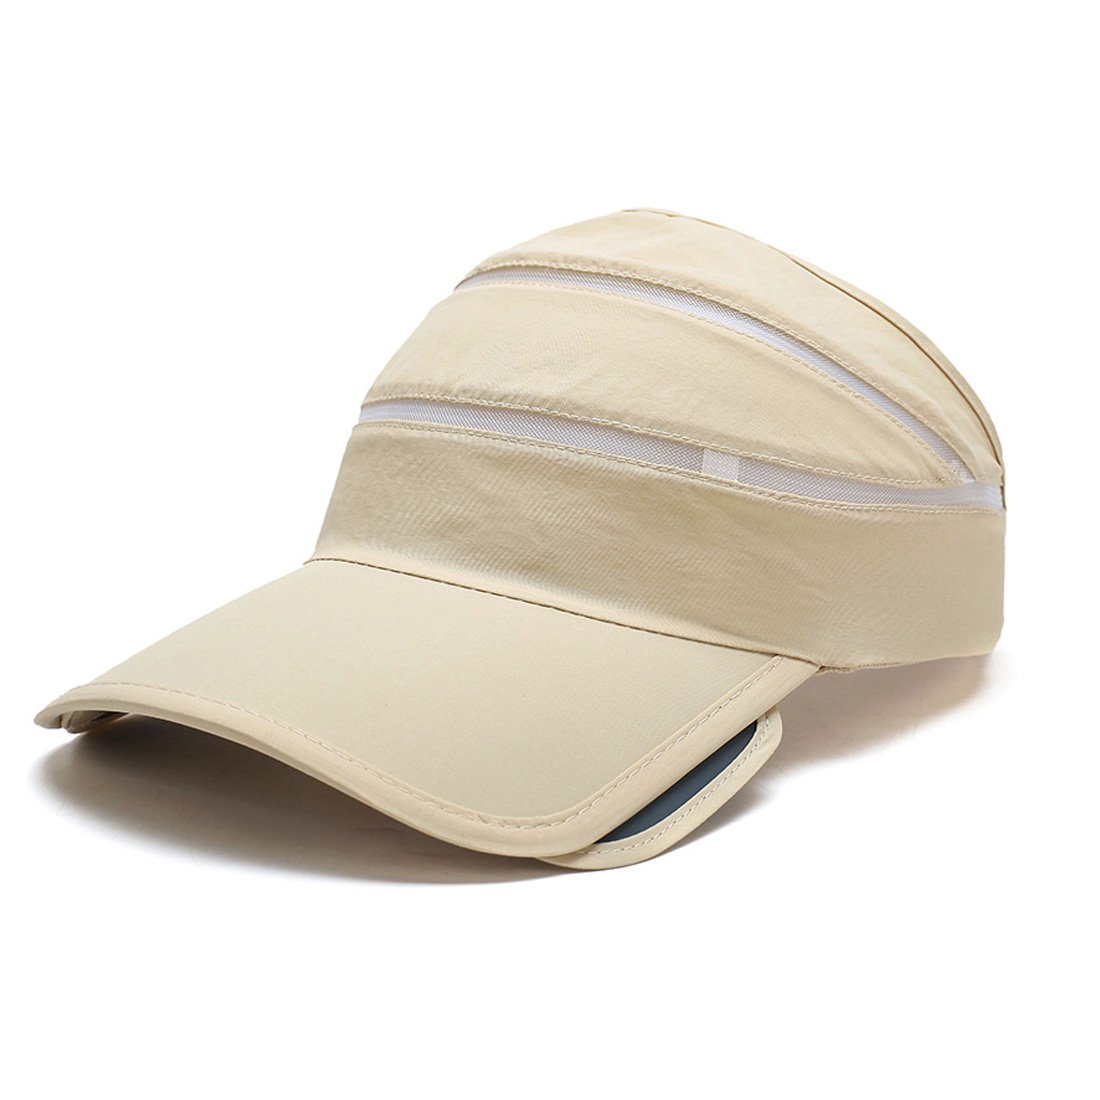 King Star Adjustable Sports Visor Hats Sun Visors Cap for Men Women Beige